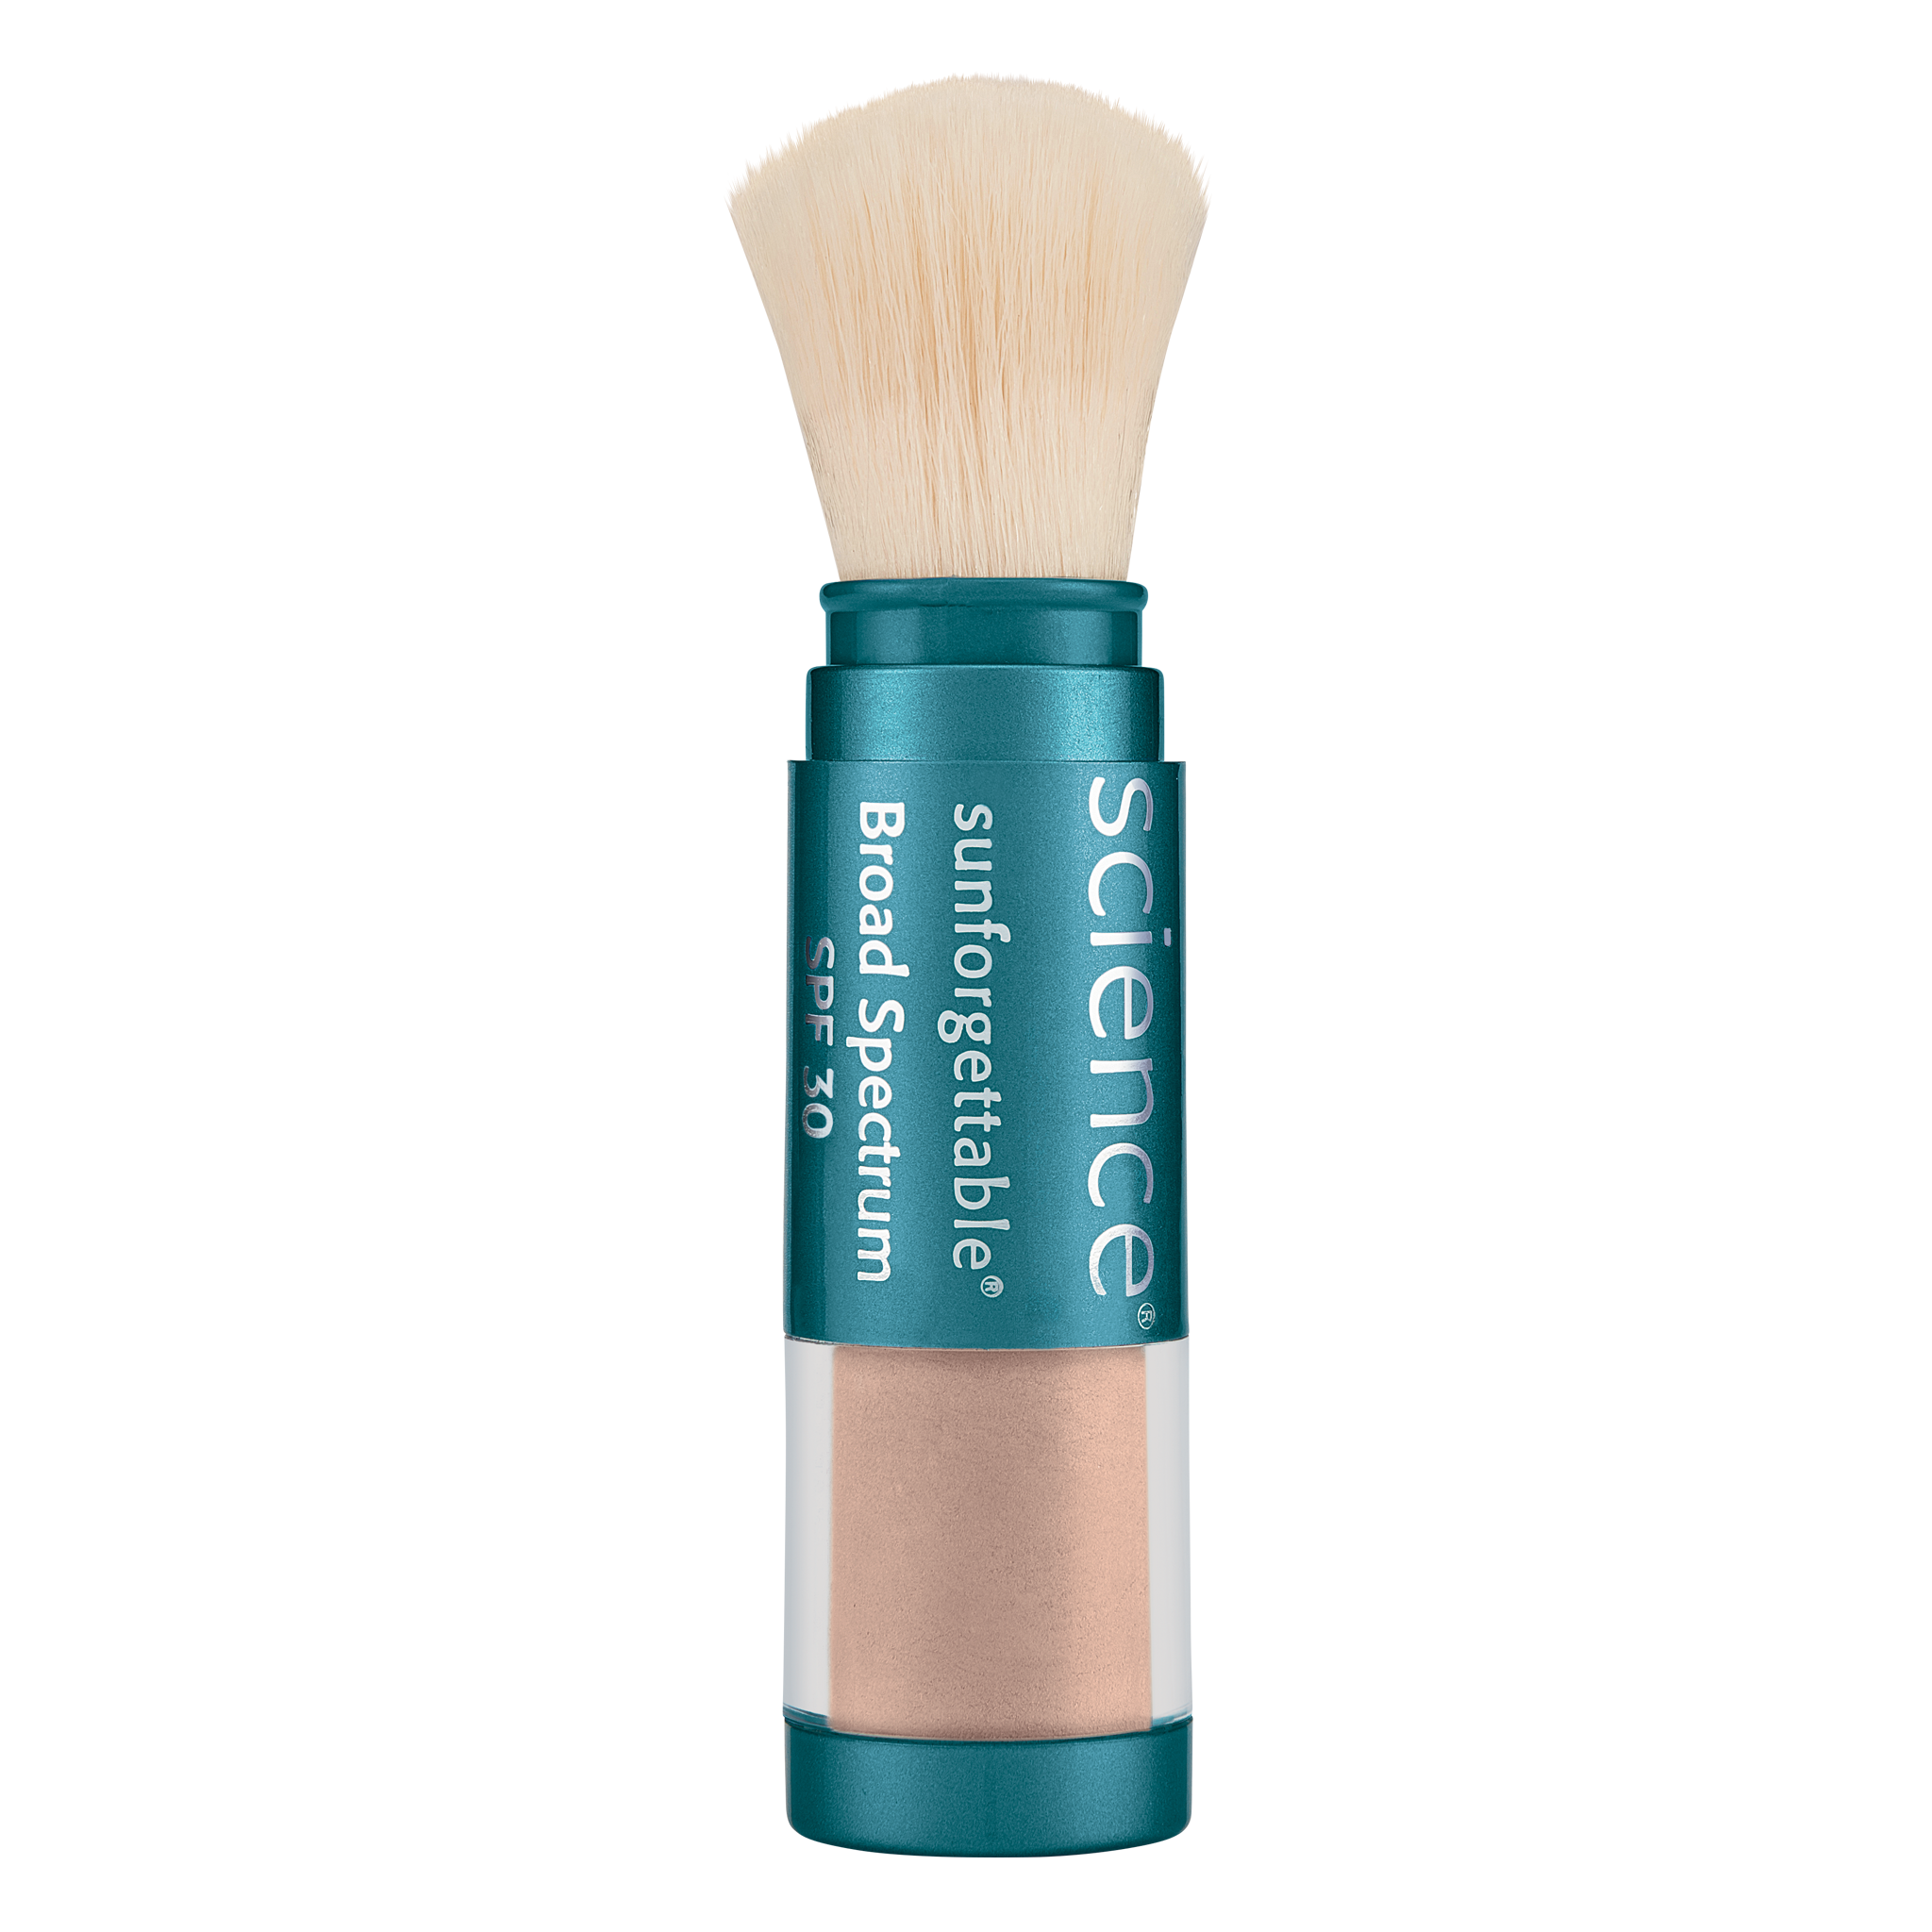 Sunforgettable® Brush-on Sunscreen SPF 30 || hide